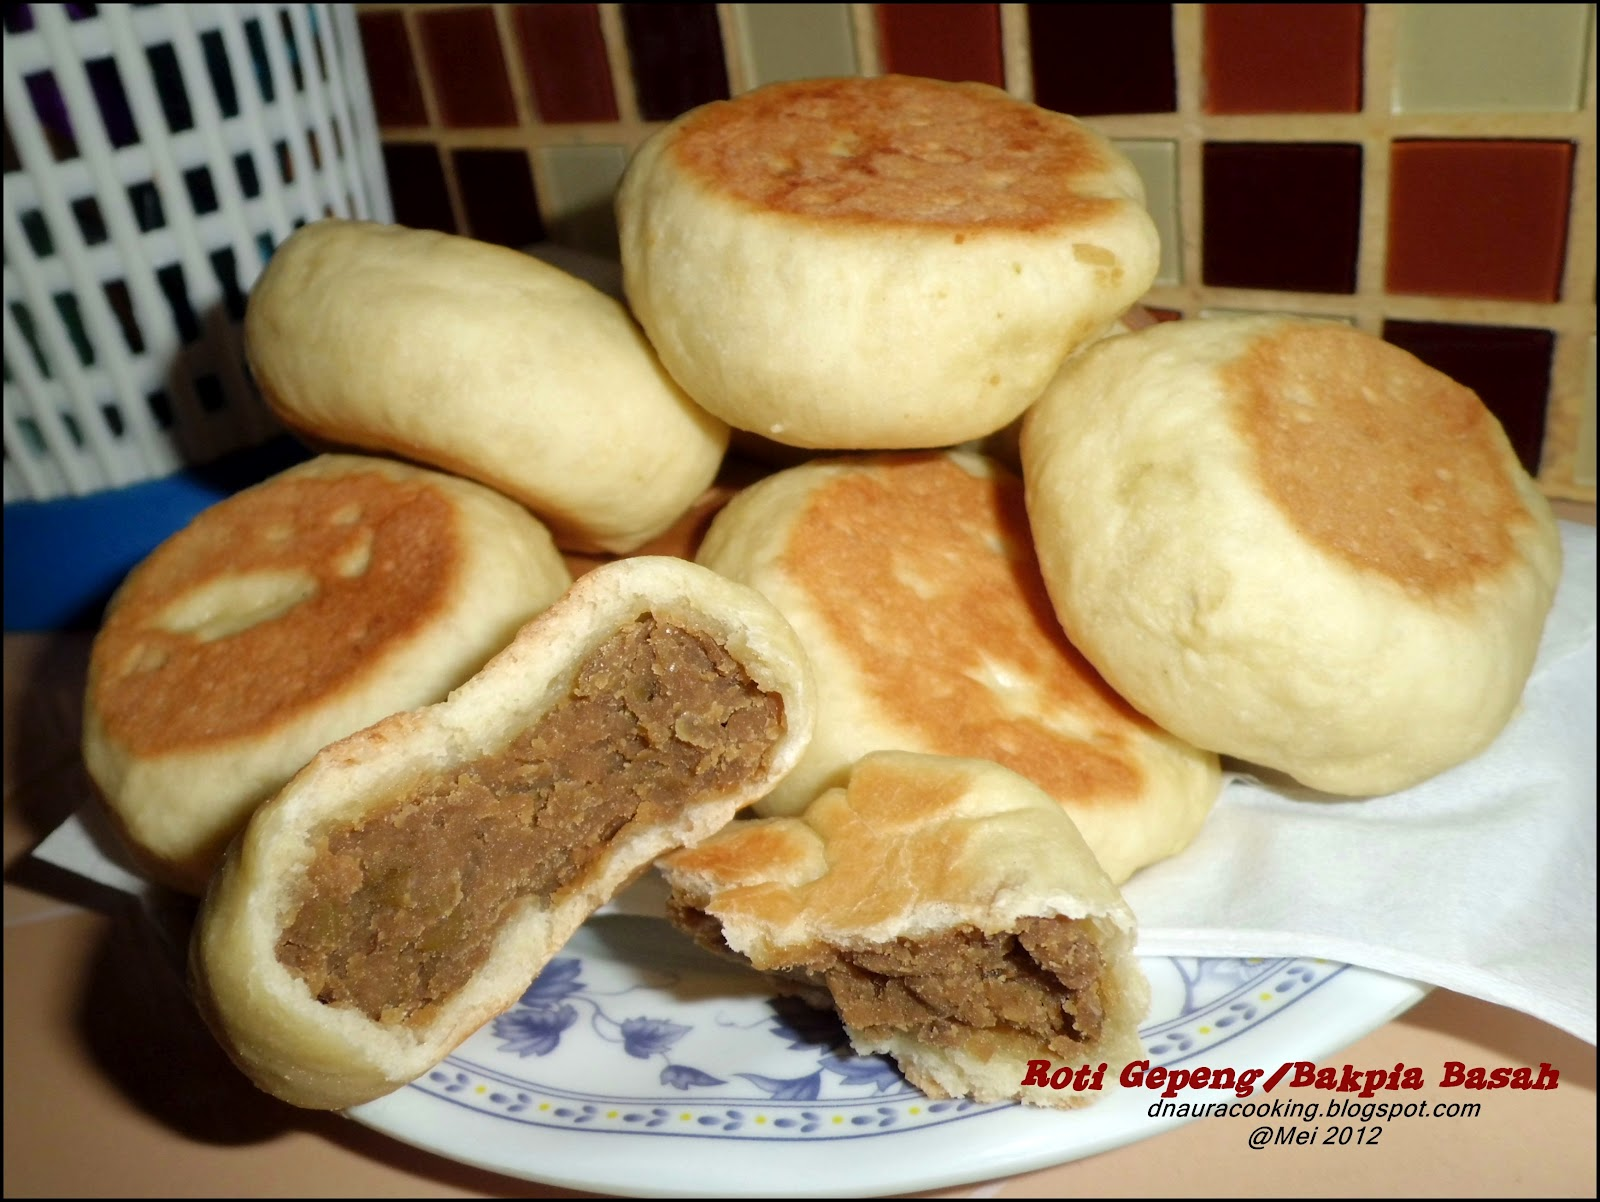 naura Natural Cooking: Roti Gepeng/Bakpia Basah